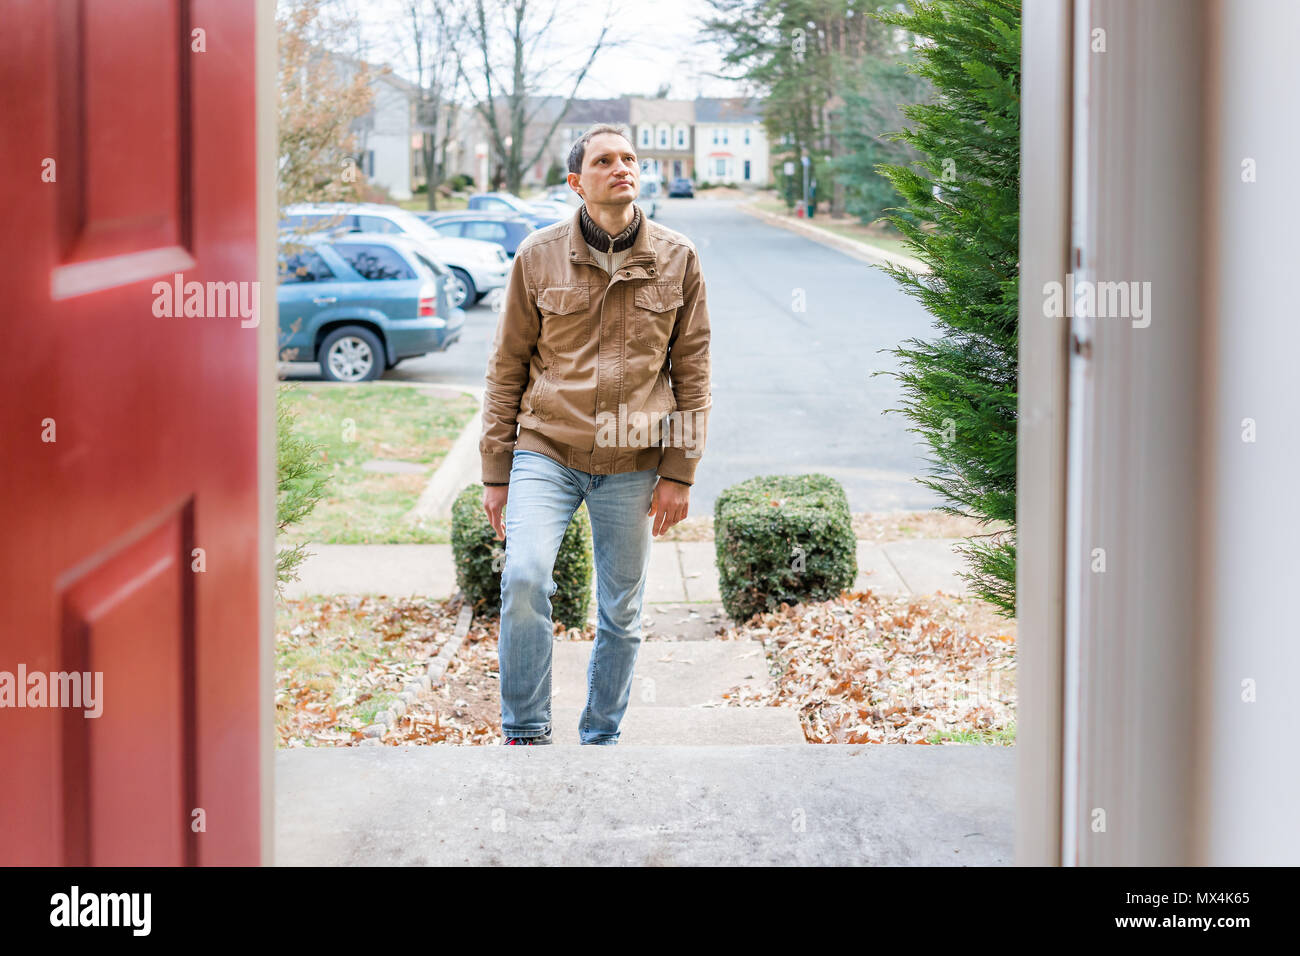 Young man standing on front porch frontyard steps in front of house home buyer looking to buy property real estate customer client in townhouse reside Stock Photo